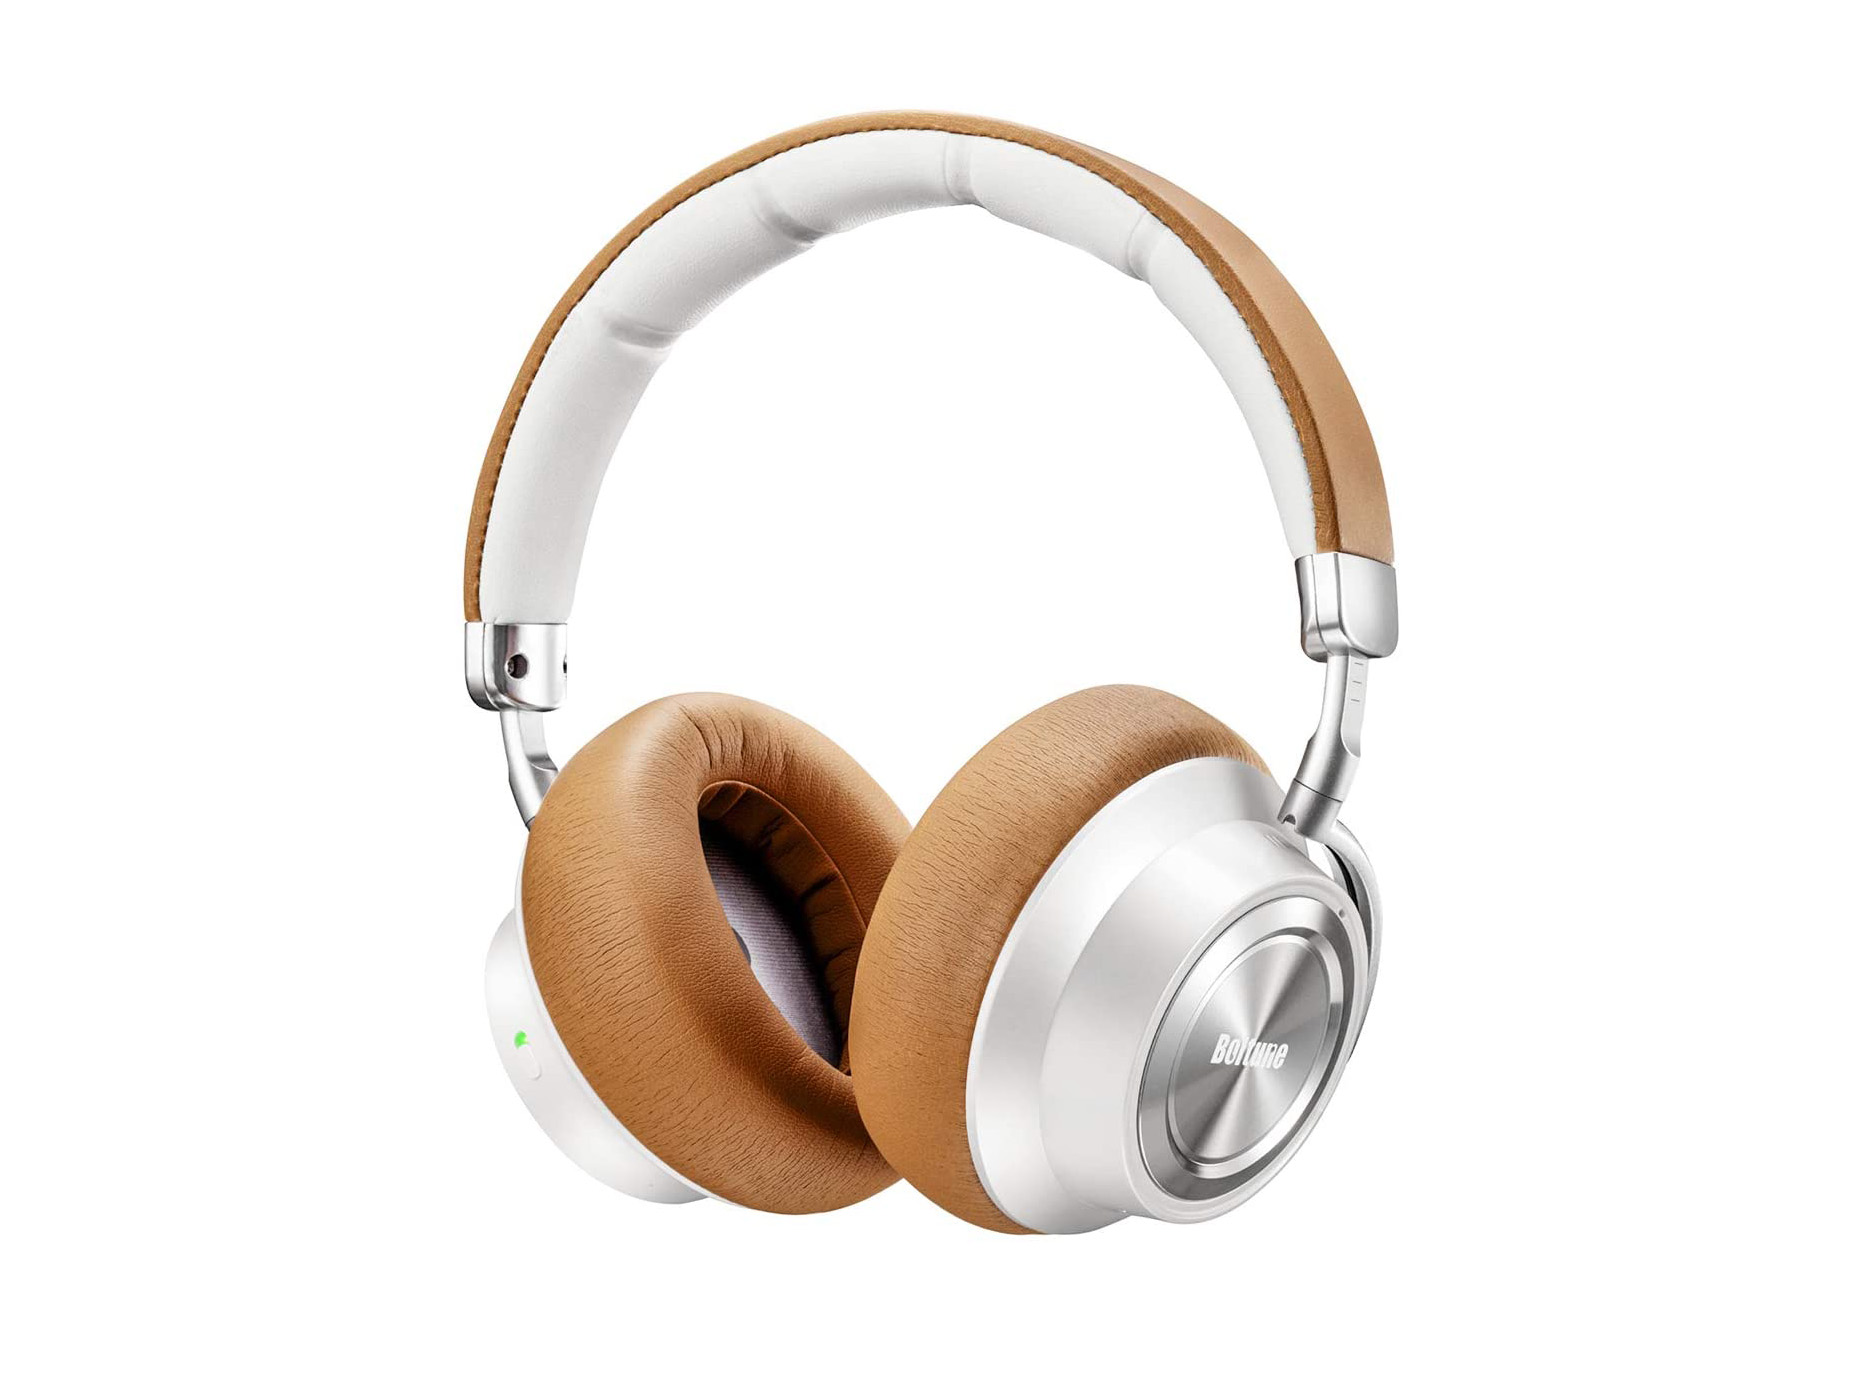 Best Meditation Products — Boltune Noise Cancelling Headphones